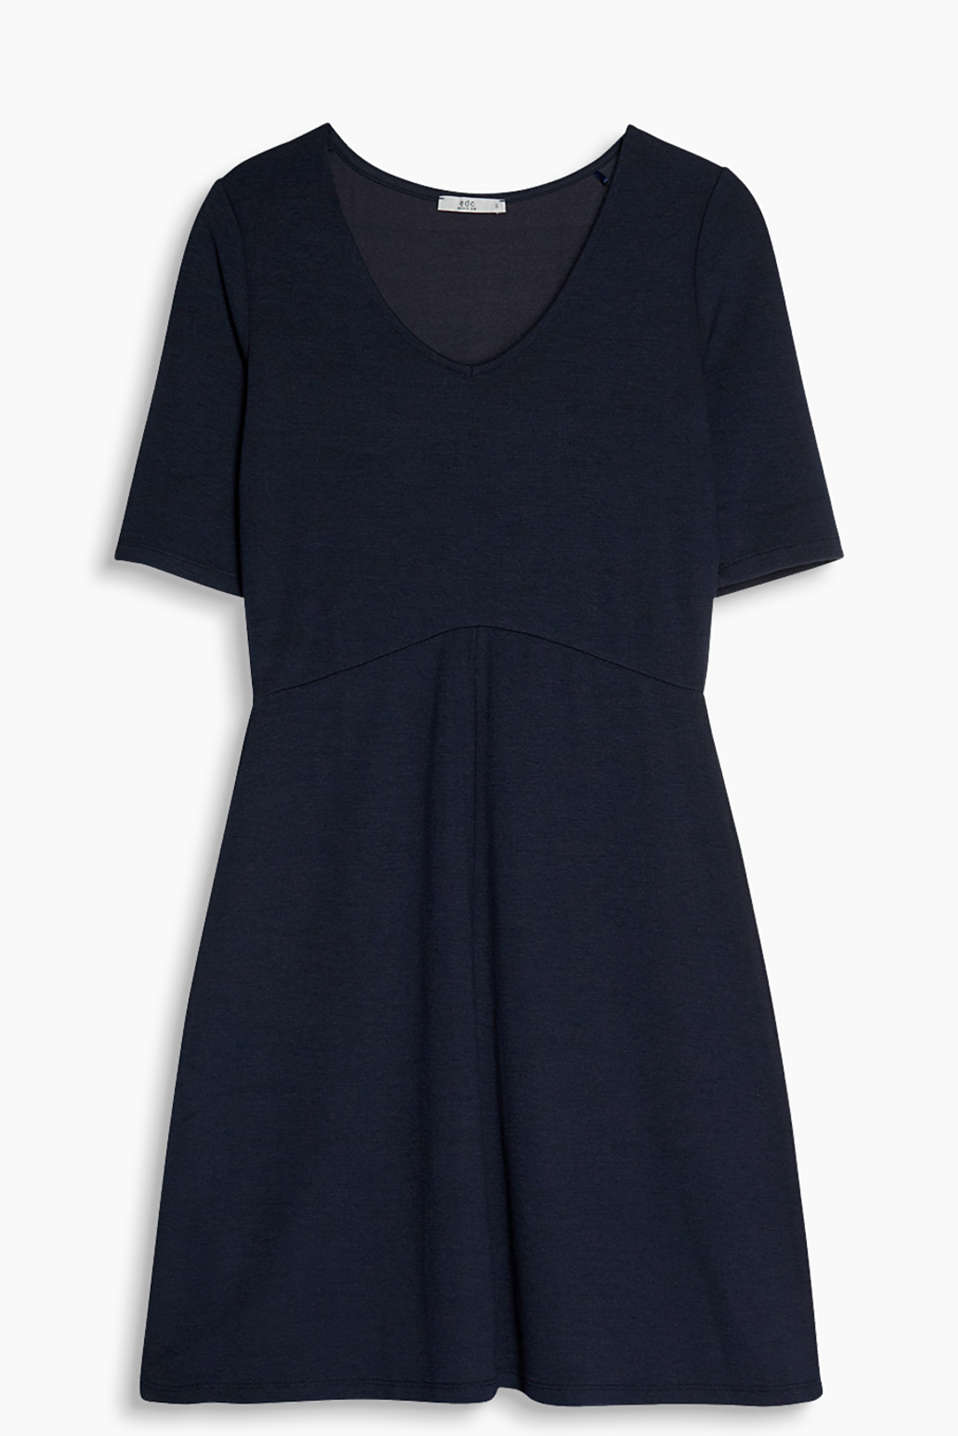 So understated and versatile - A-line dress in stretchy jersey fabric